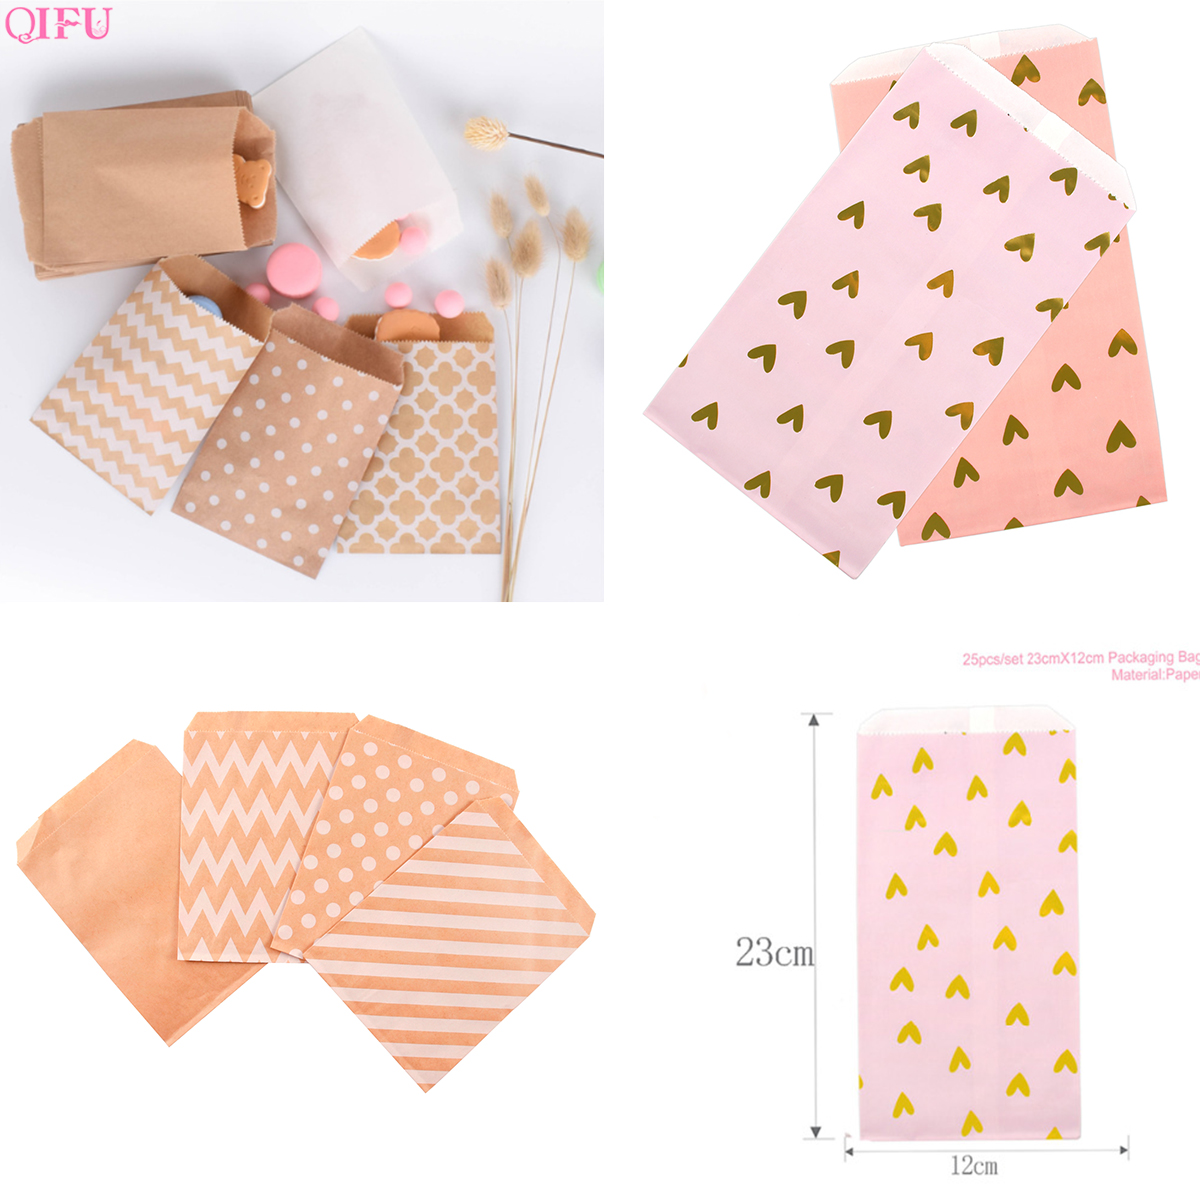 Kraft Paper Bags Gift Bag Candy Box Popcorn Box Goodie Bags Cookie Printed Paper Treat Bags Paper Christmas Box Packaging Sweets